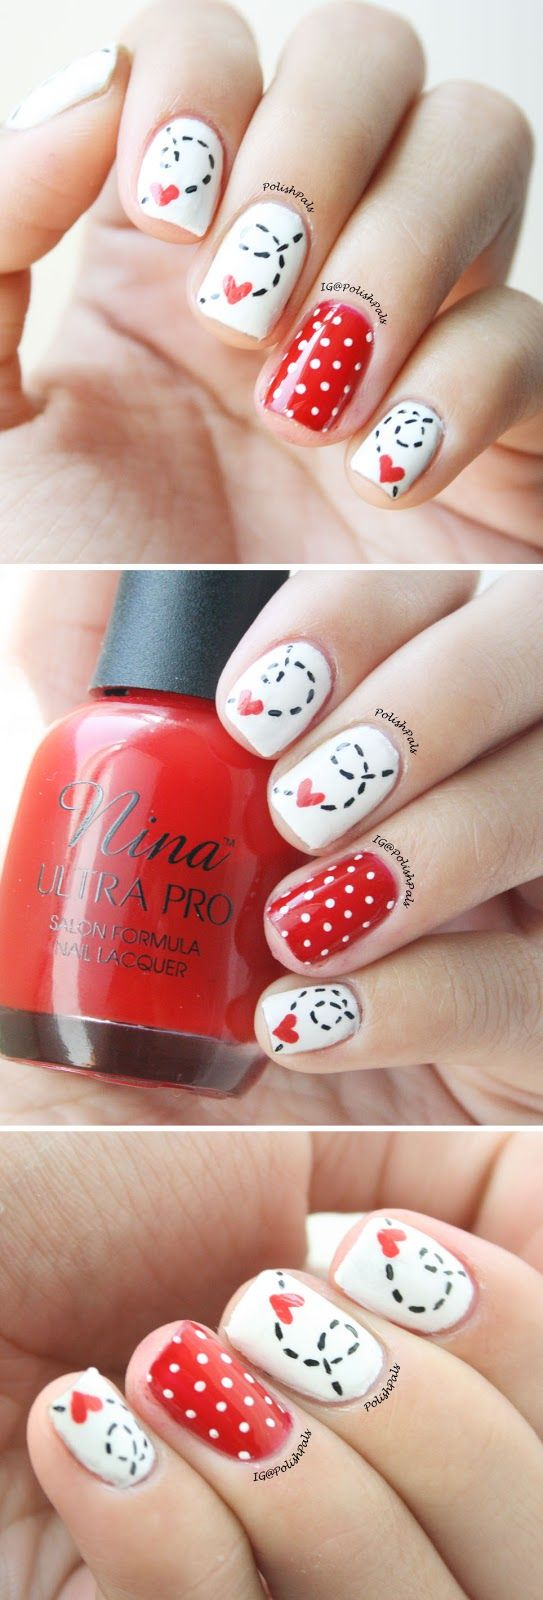 1860 best cute nail art images on pinterest fingernail designs valentines day nails by polishpals click here to find the tutorial on how to solutioingenieria Choice Image